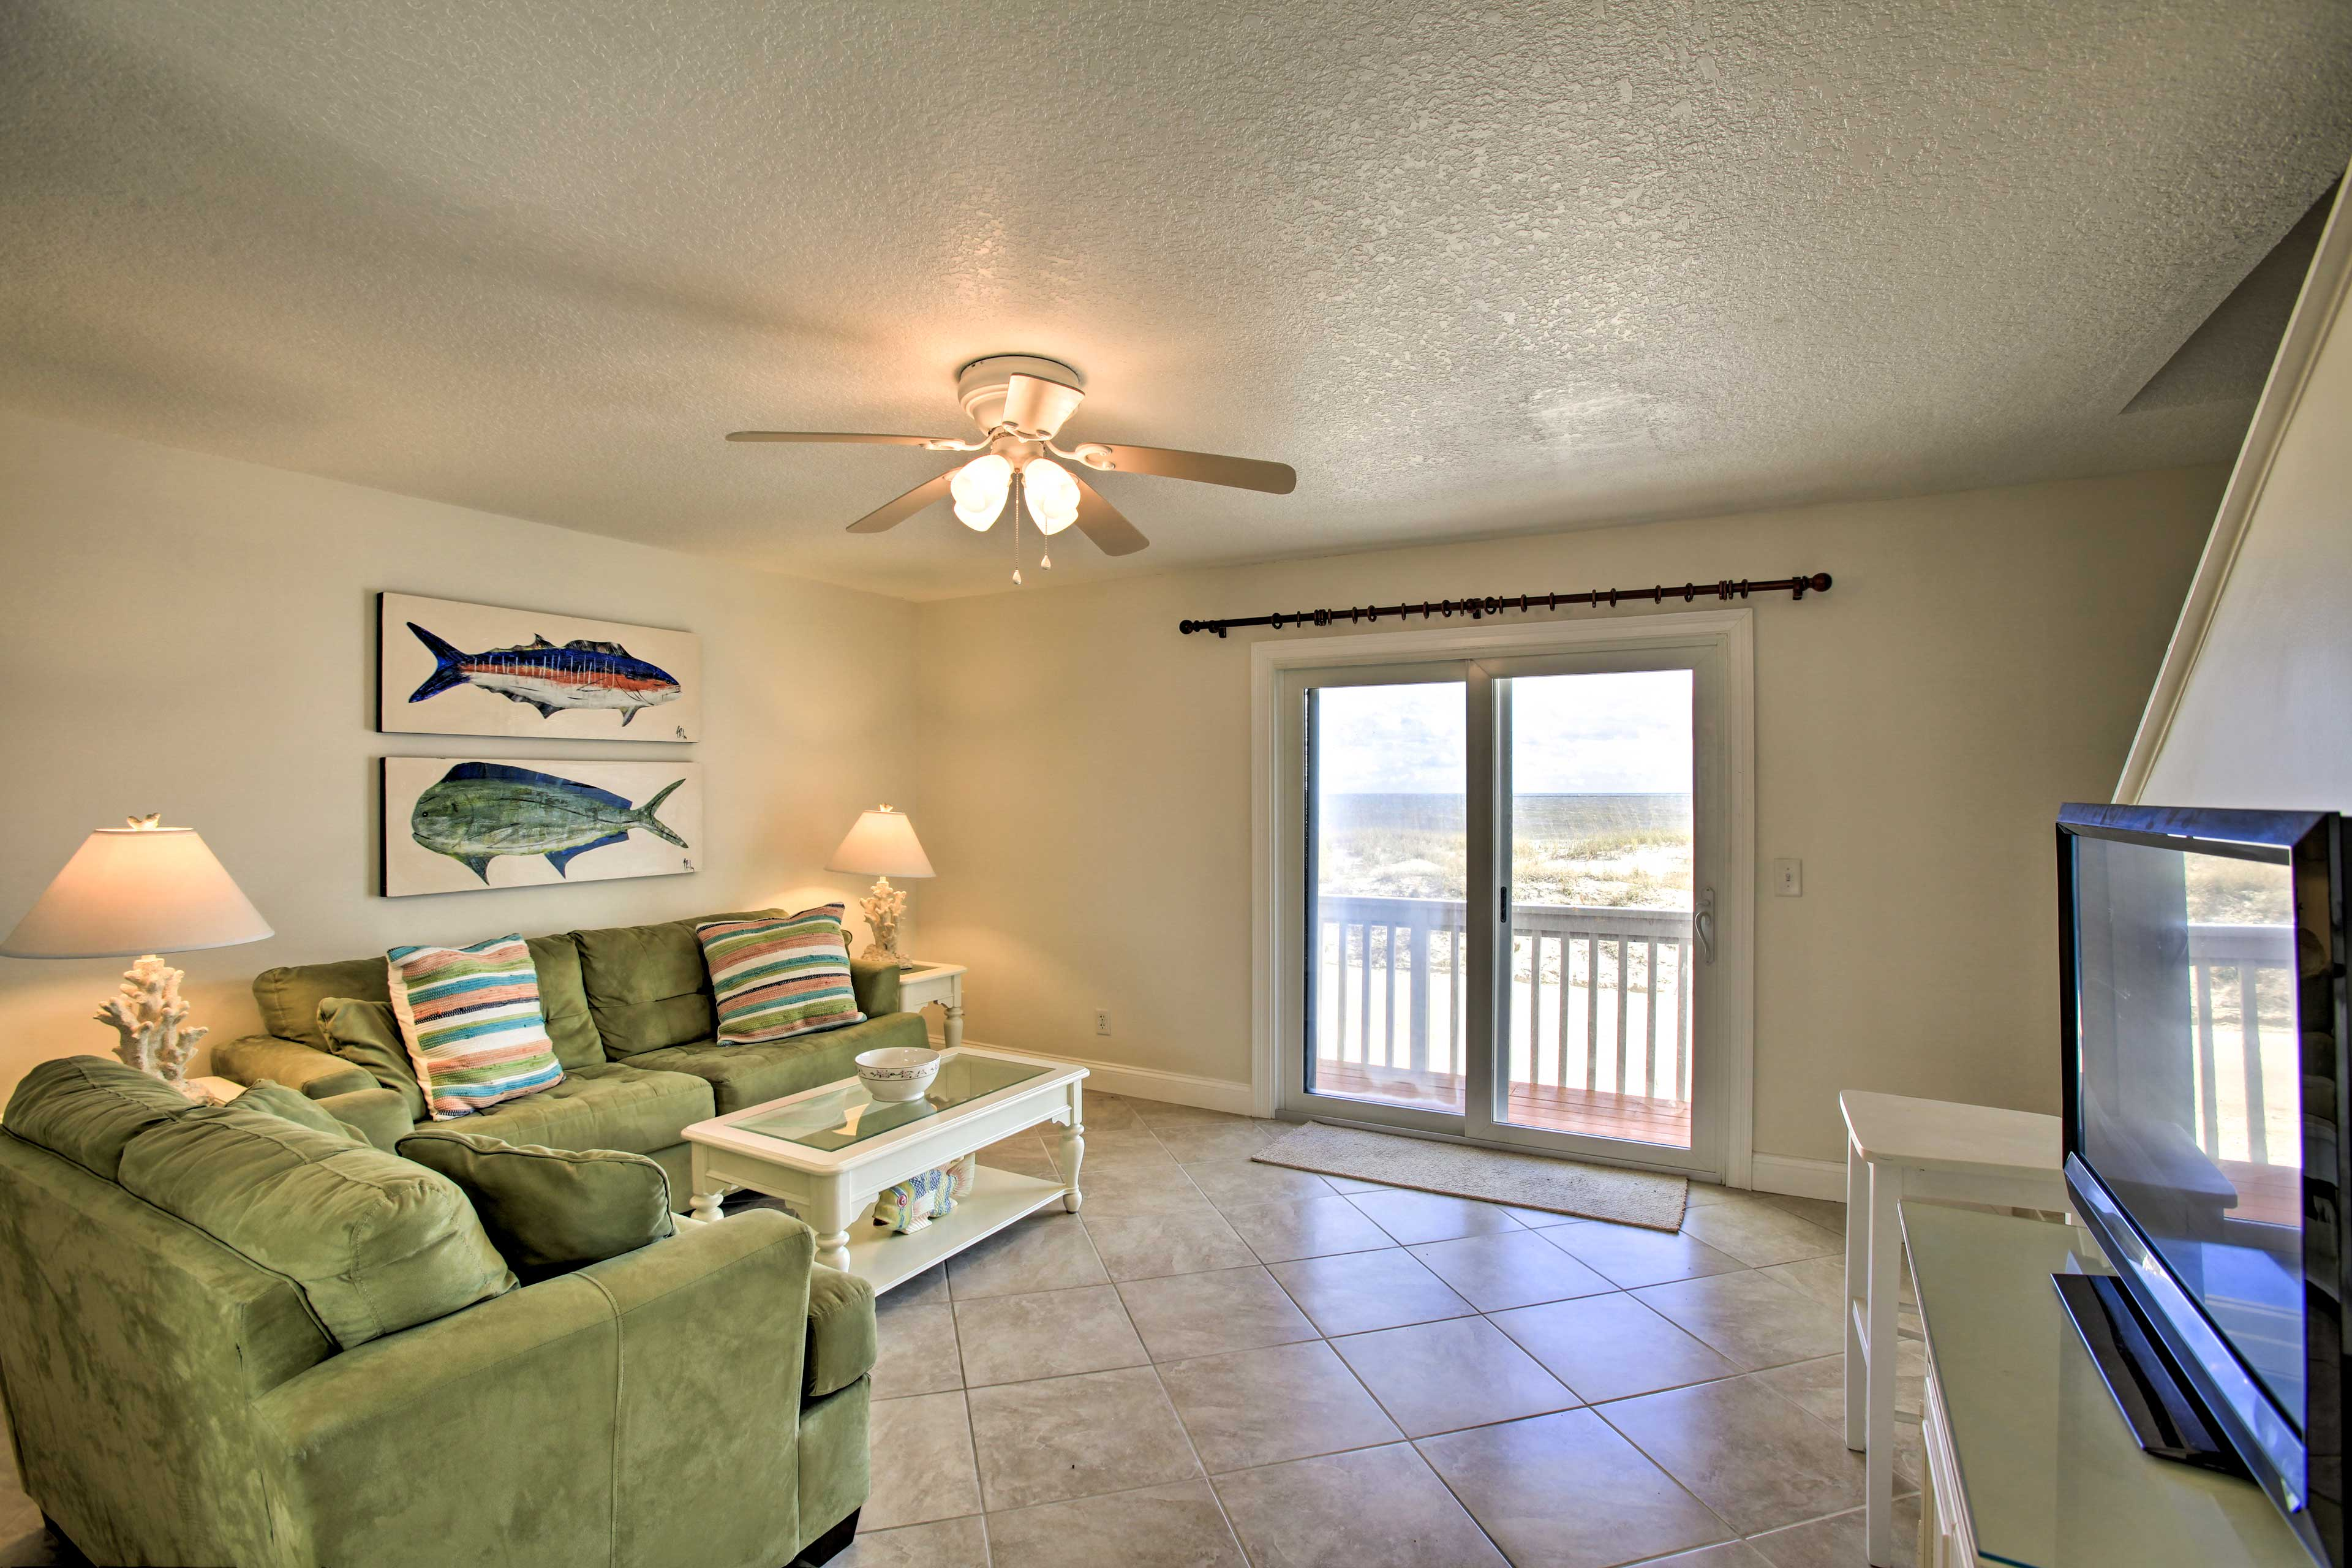 Up to 4 guests can lounge throughout 1,064 square feet of living space.